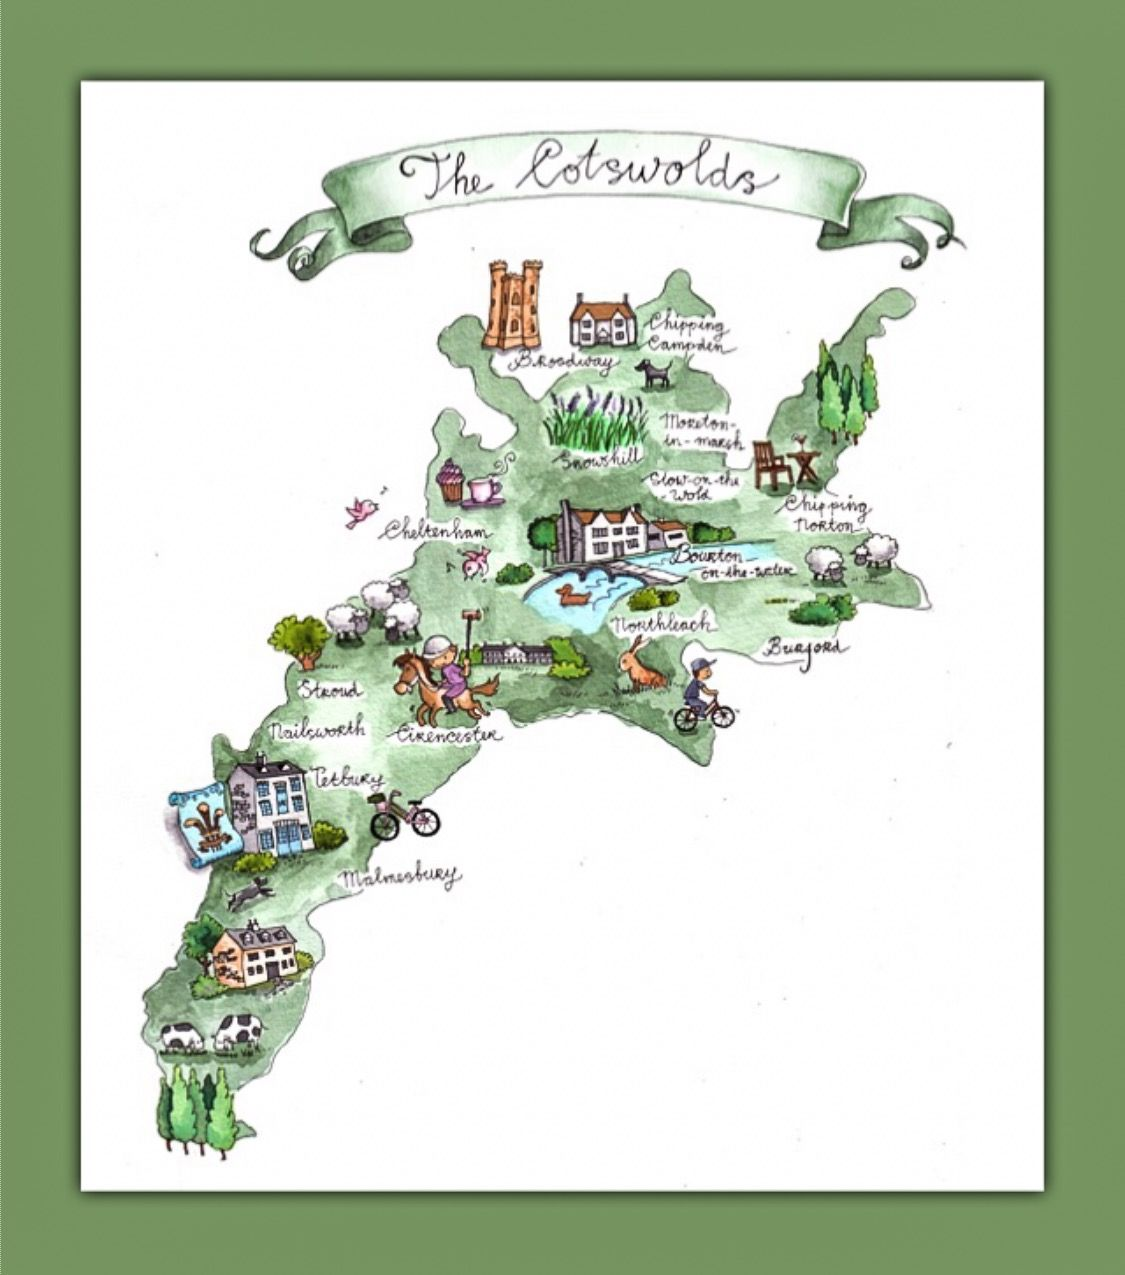 The Cotswolds Map Illustrated Map of The Cotswolds | England | England in 2019